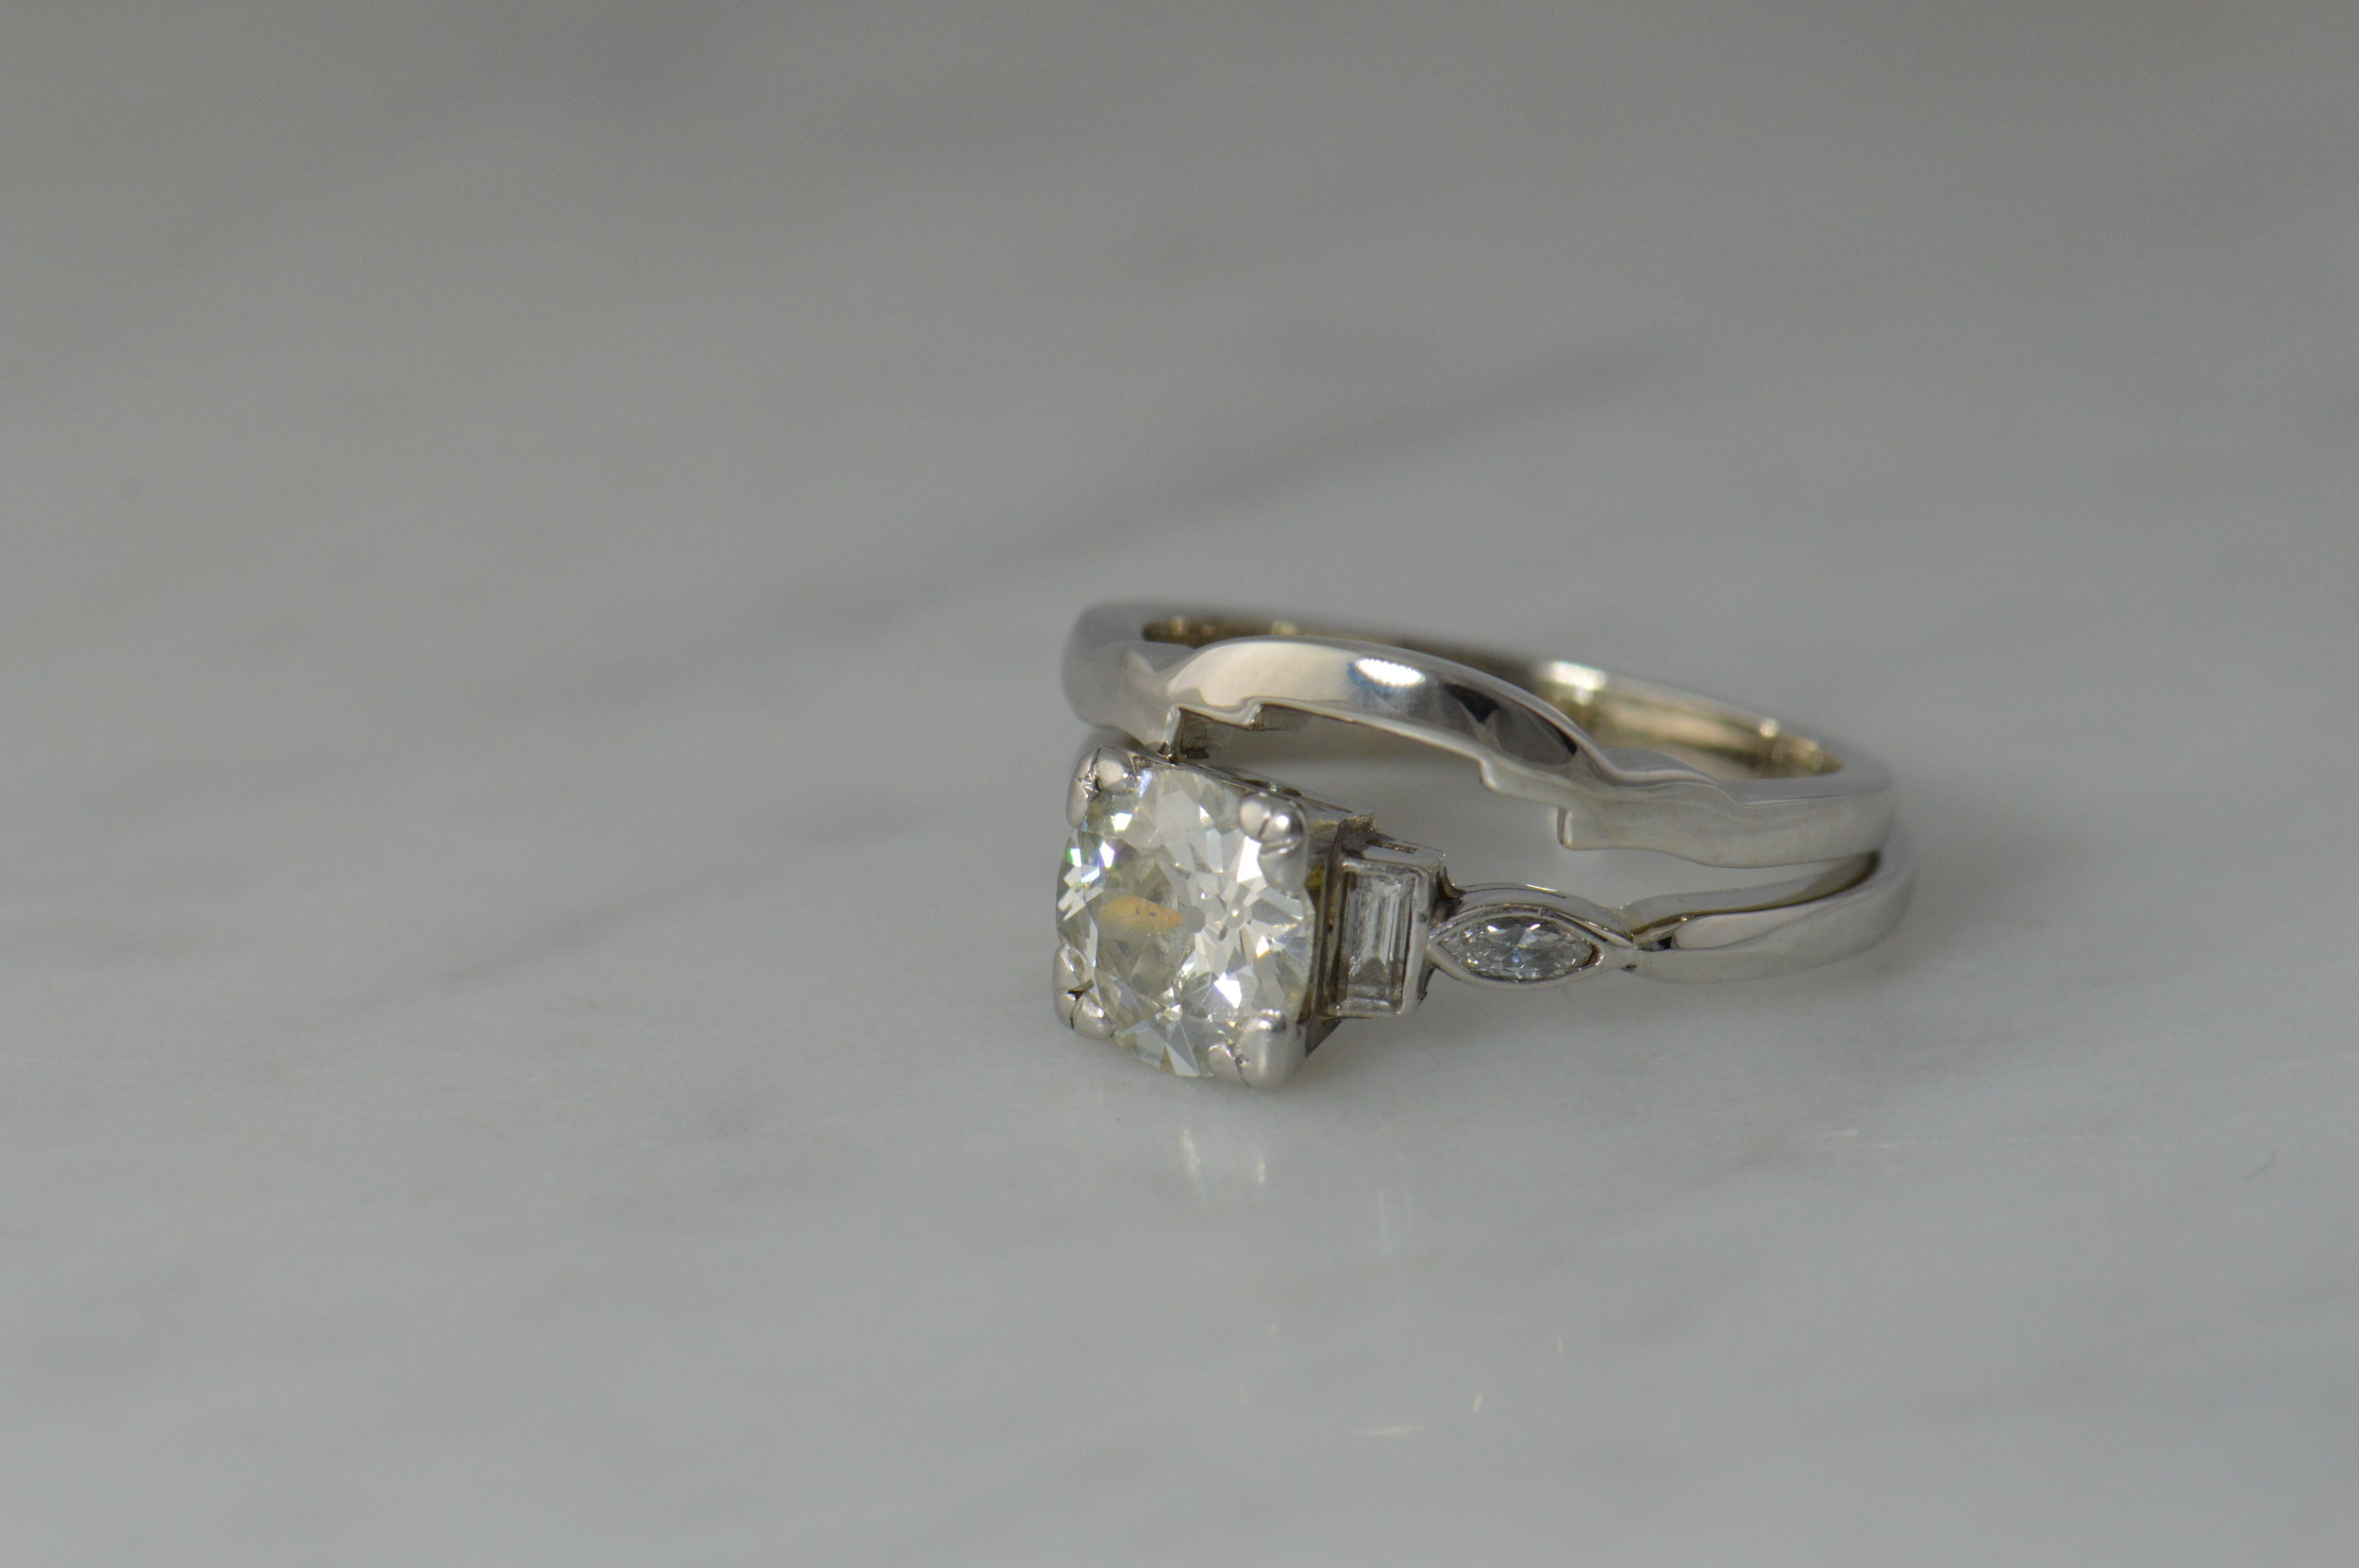 darvier-client-vintage-ring-simple-fitted-very-important-wedding-ring.JPG